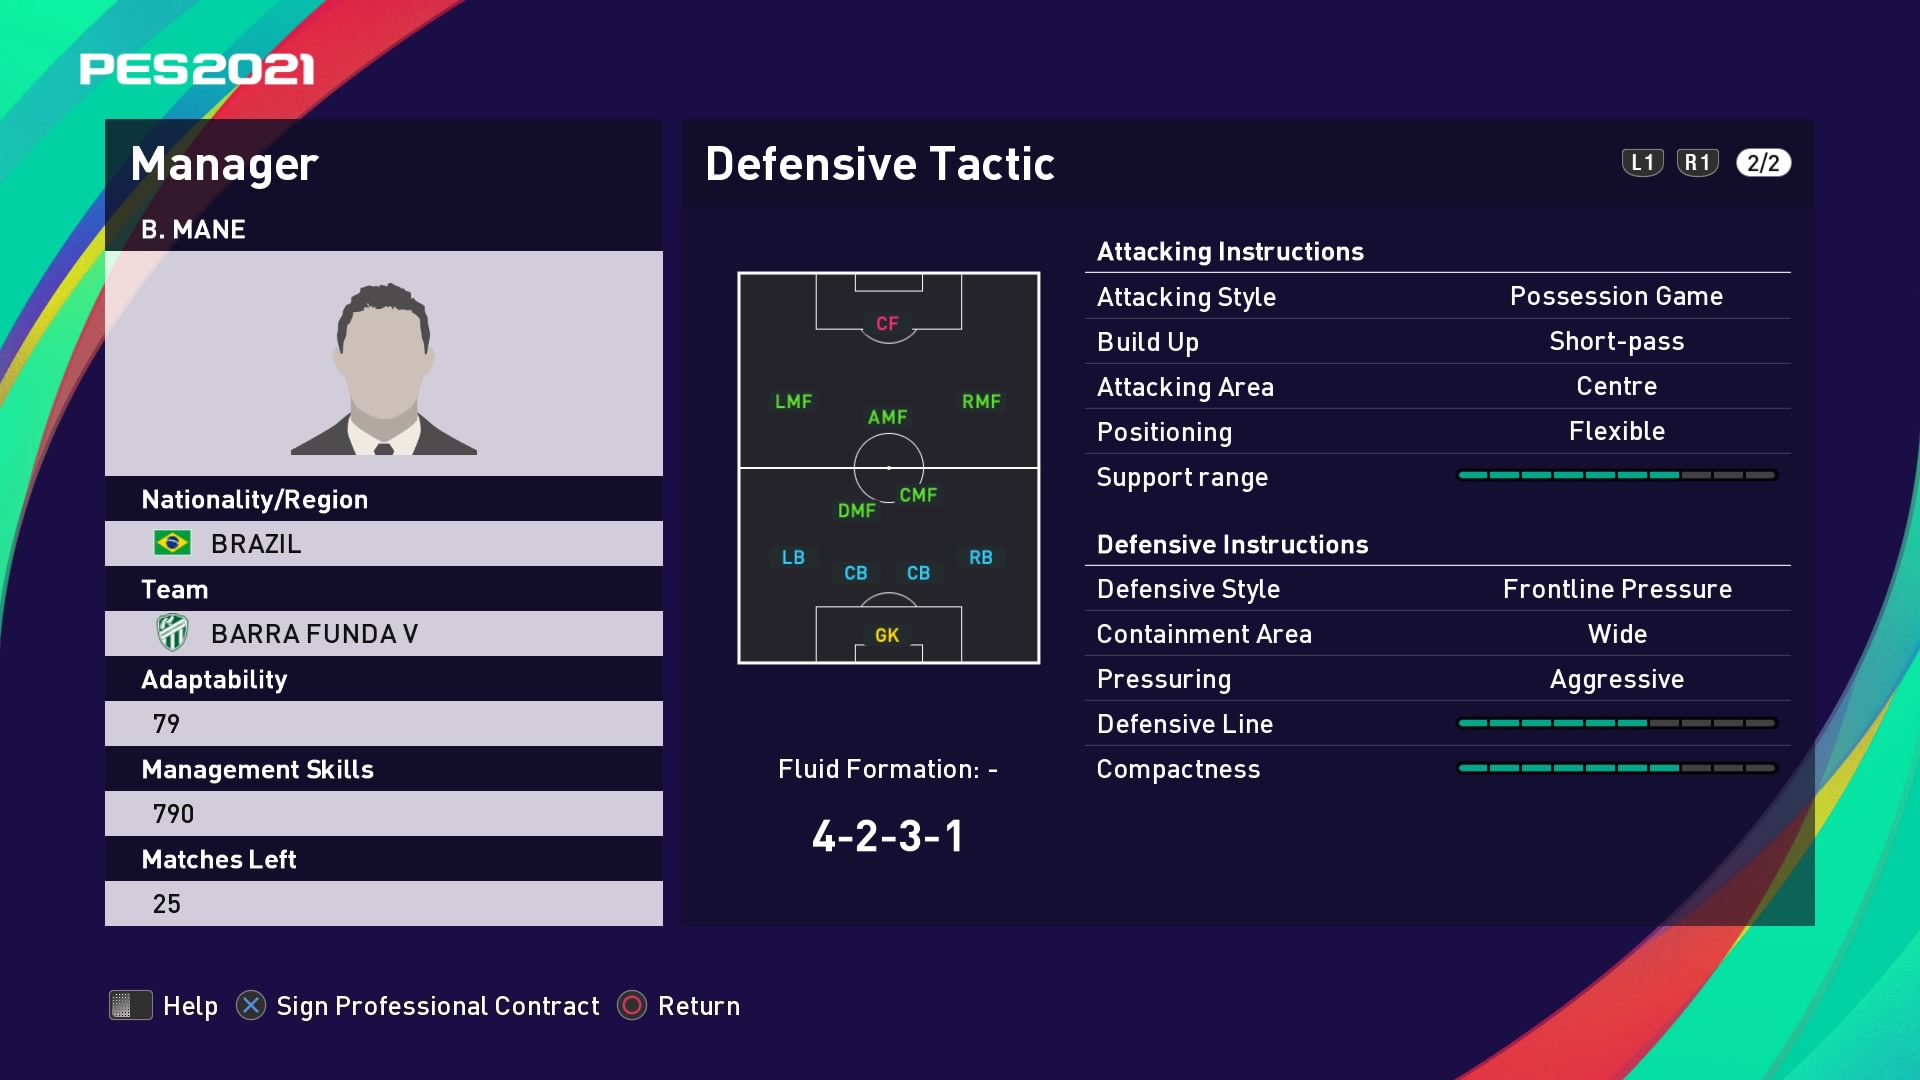 B. Mane (2) (Vanderlei Luxemburgo) Defensive Tactic in PES 2021 myClub